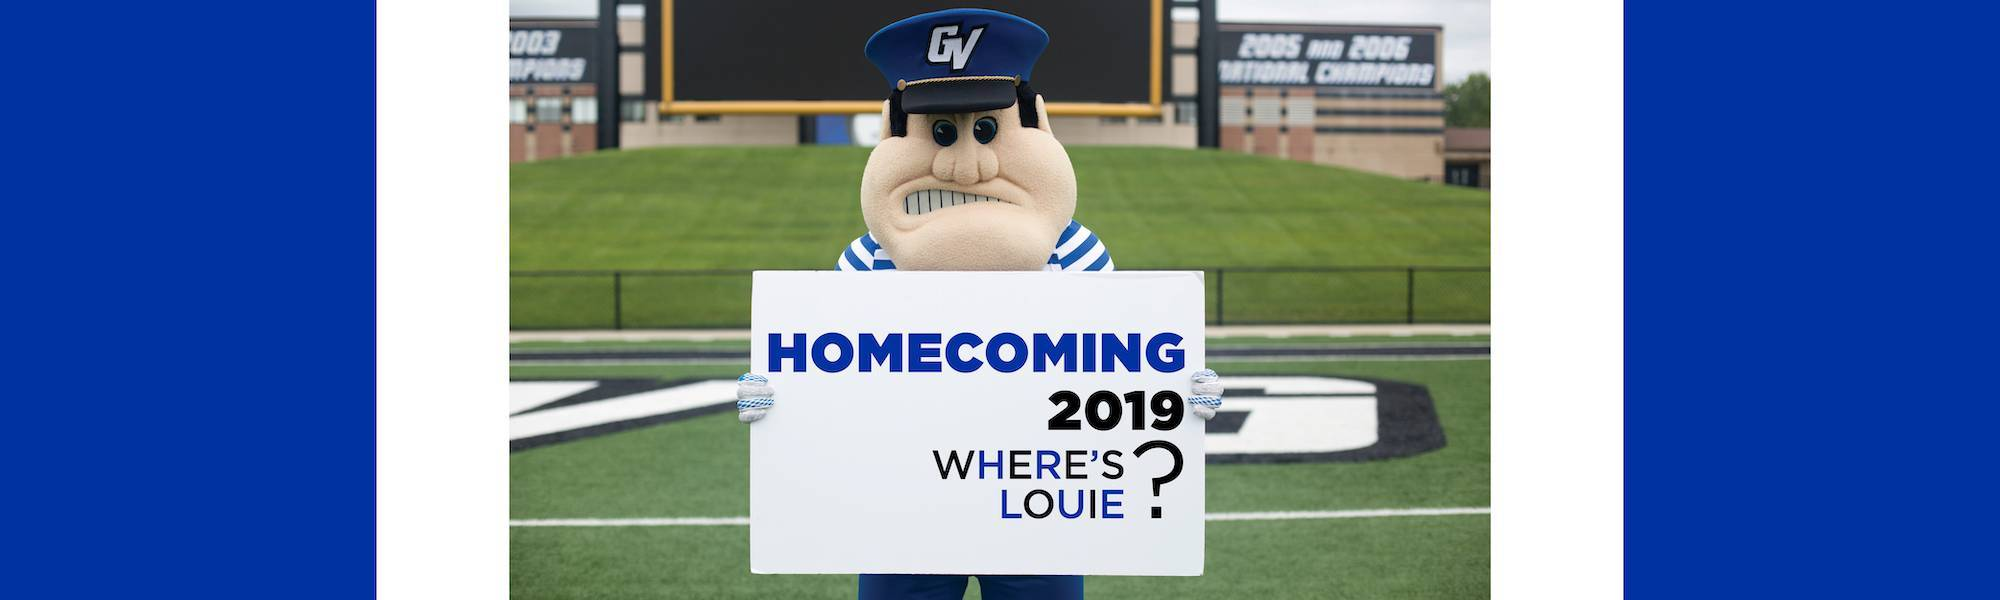 GVSU Homecoming: Where's Louie?